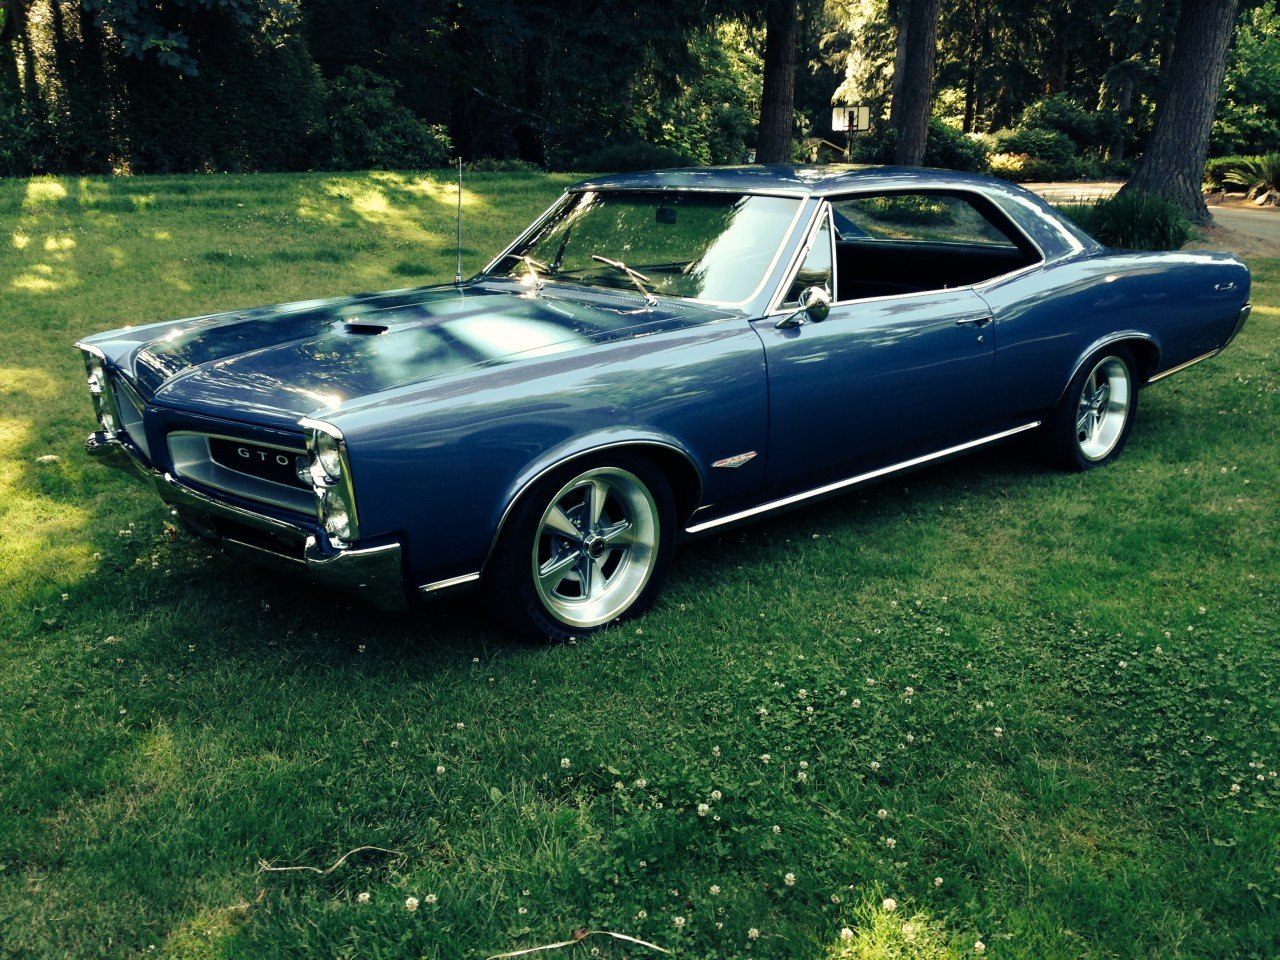 Classic Muscle Cars For Sale >> 1966 Pontiac GTO for sale near woodinville, Washington 98072 - Classics on Autotrader